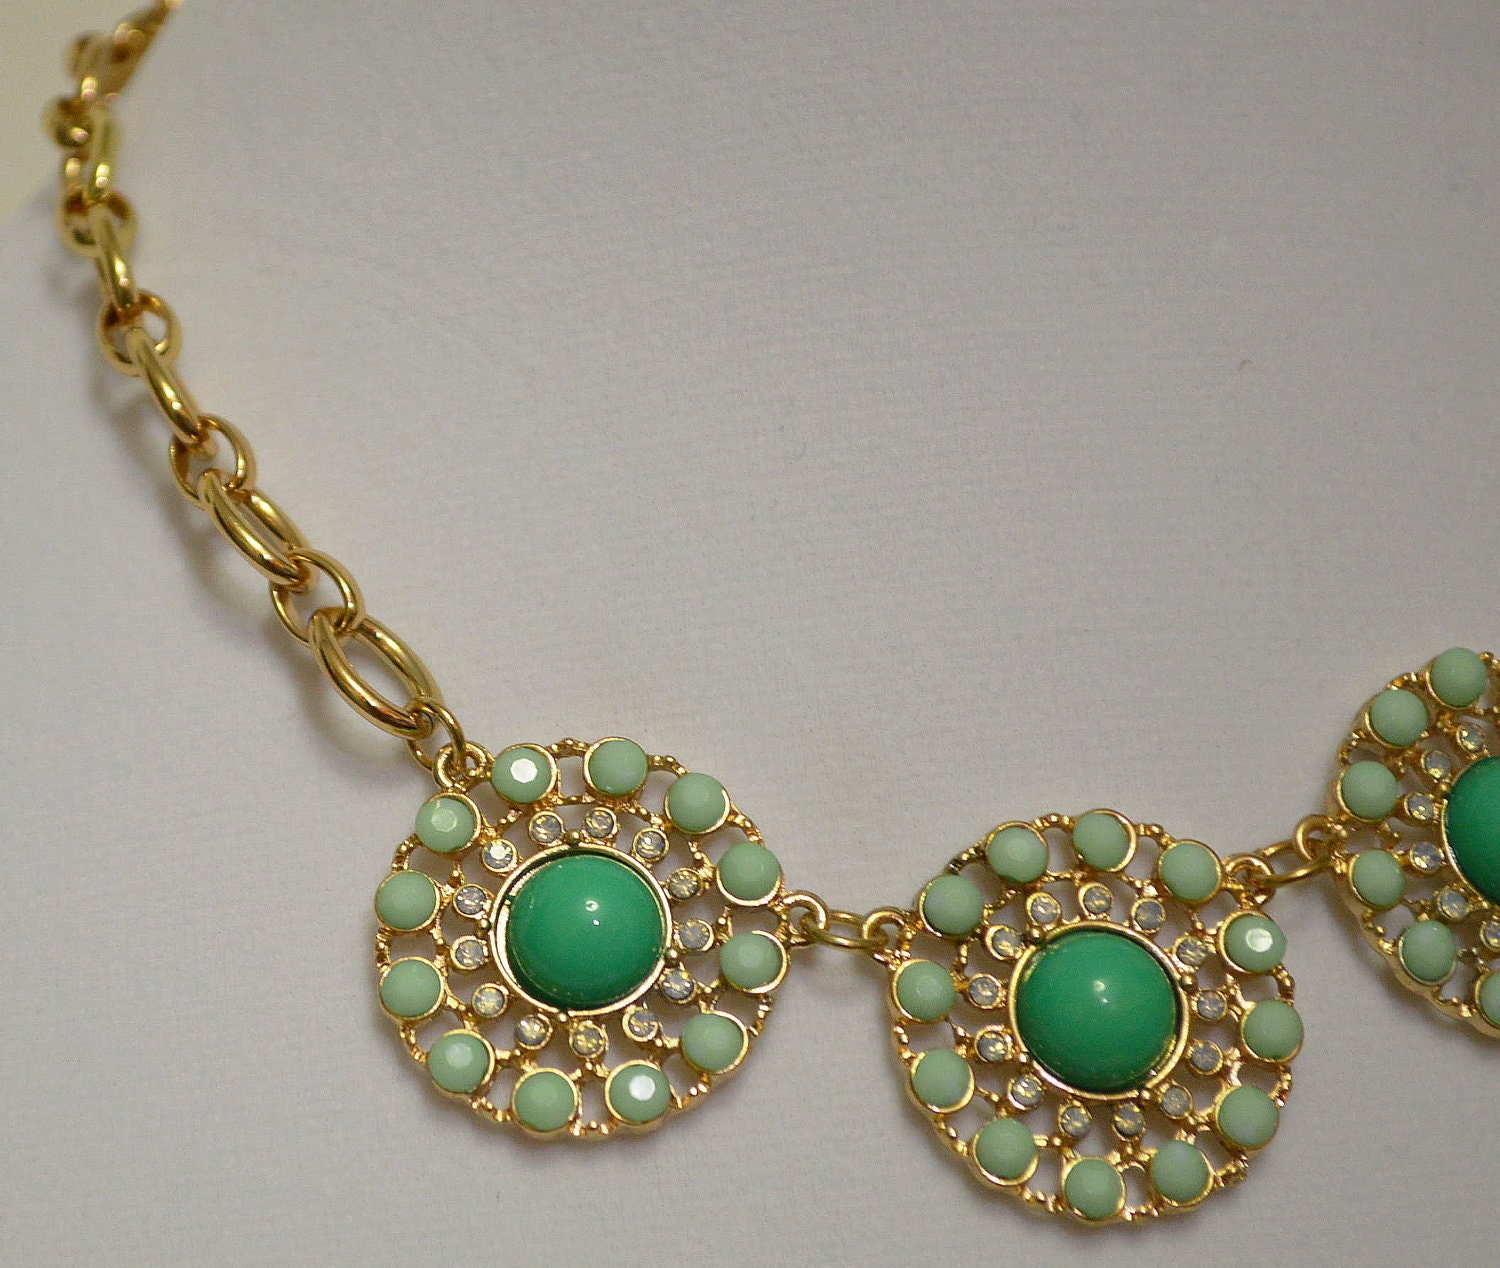 HOLIDAY SALE - Enameled Turquoise & Crystal Necklace